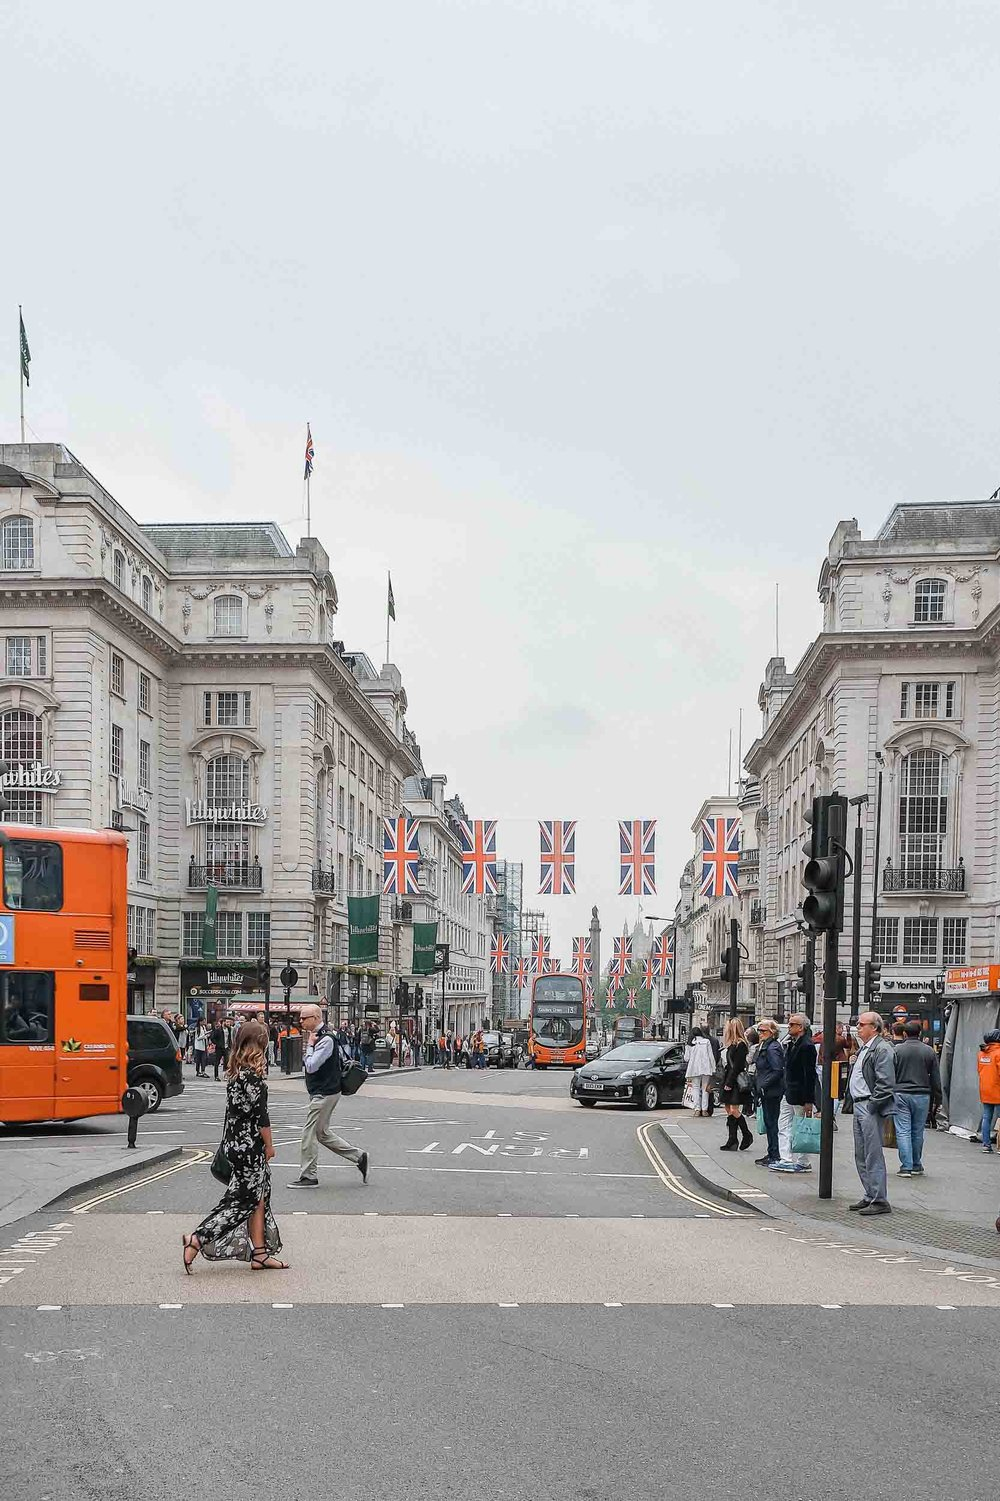 The best 3 days in London itinerary includes time to walk around beautiful Regent Street